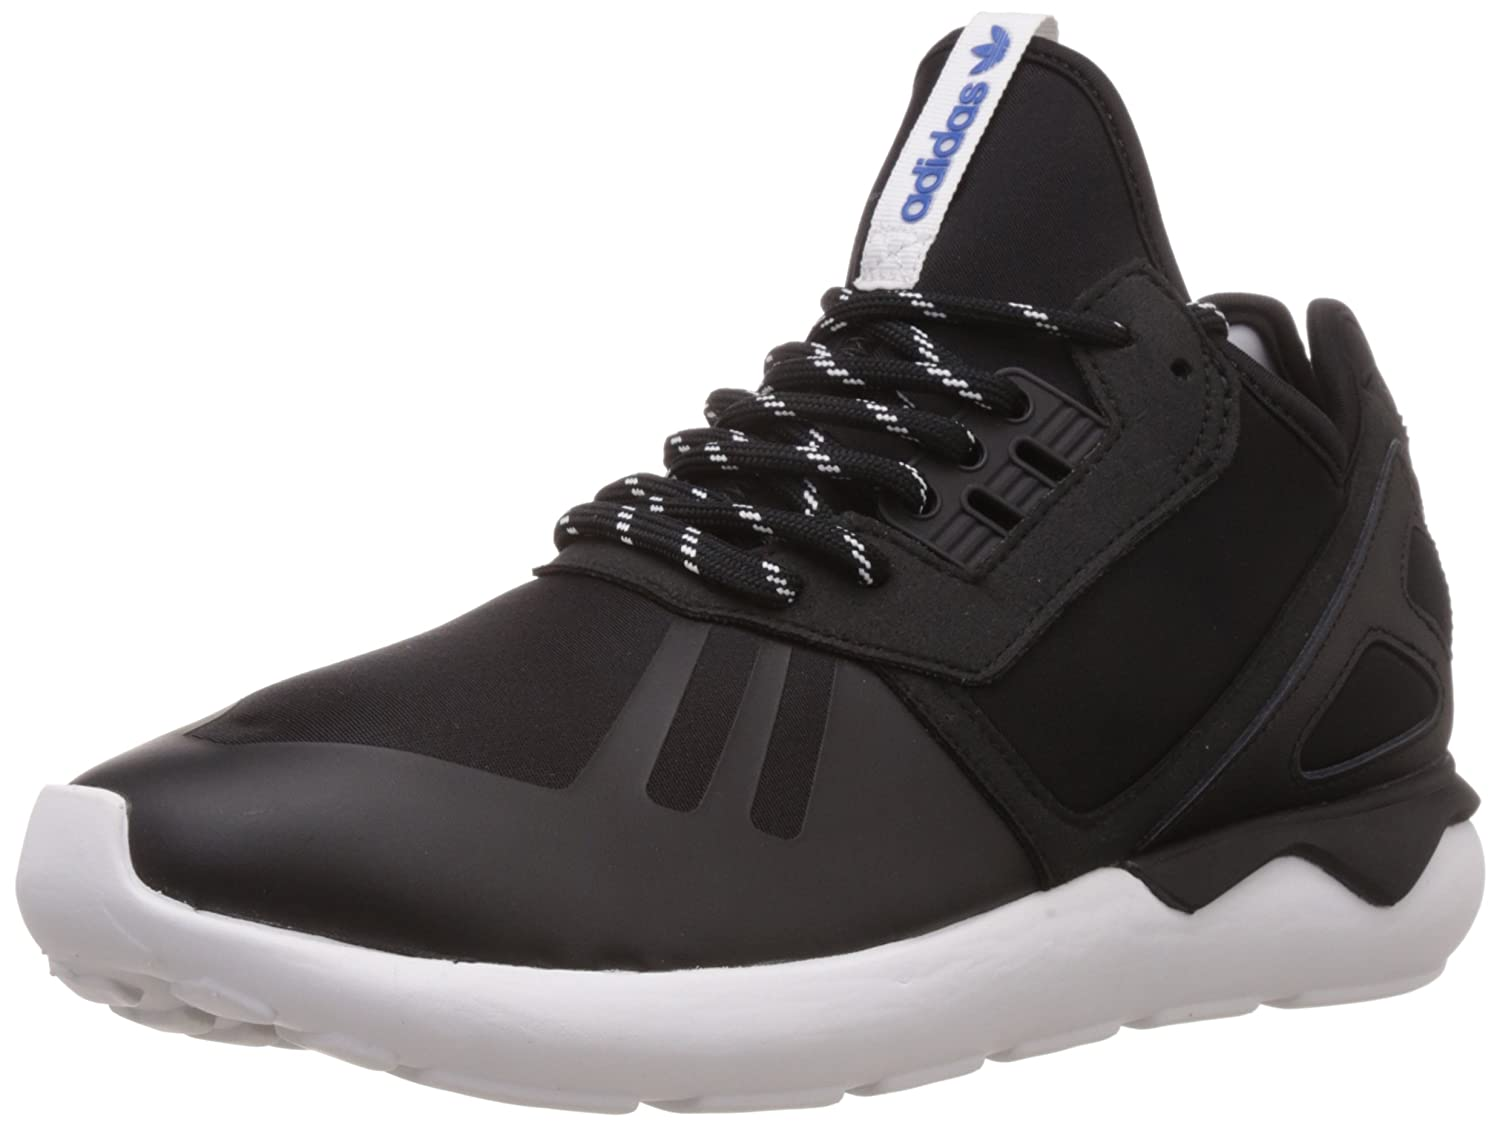 the best attitude 750a6 6c1a9 adidas Tubular Runner, Men's Running Shoes